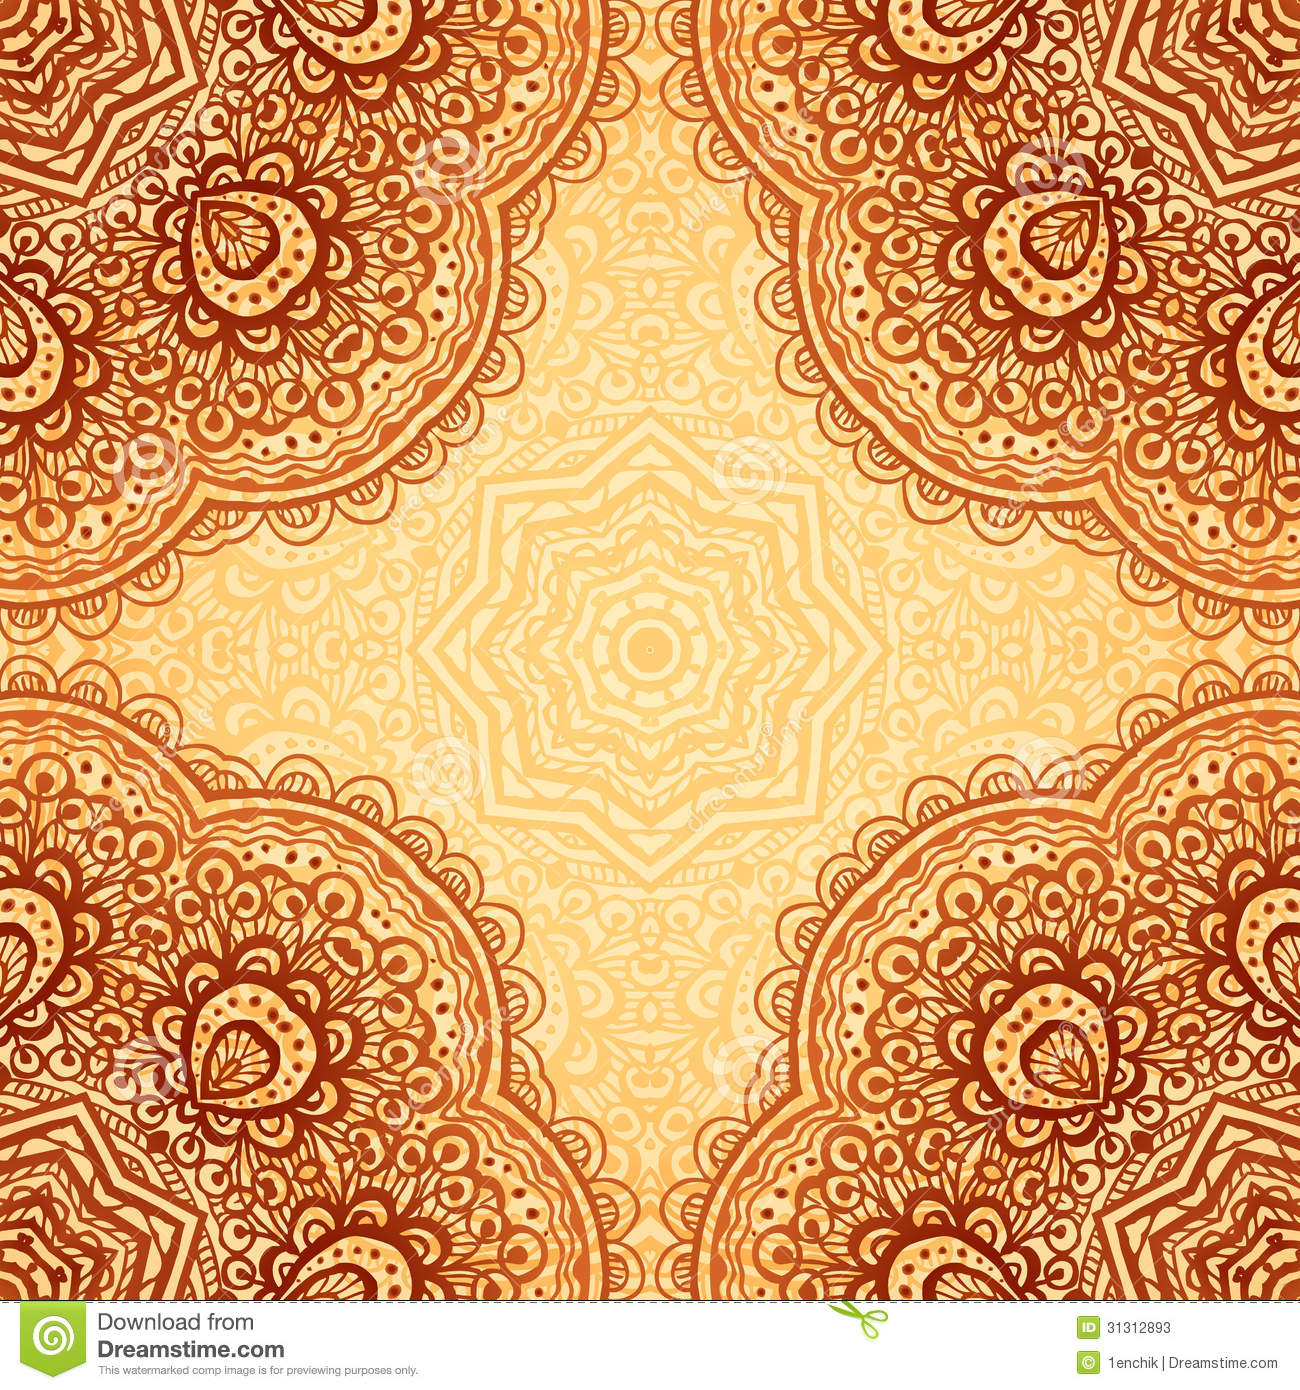 Ornate Ethnic Henna Colors Vector Background Stock Photos  Image 31312893